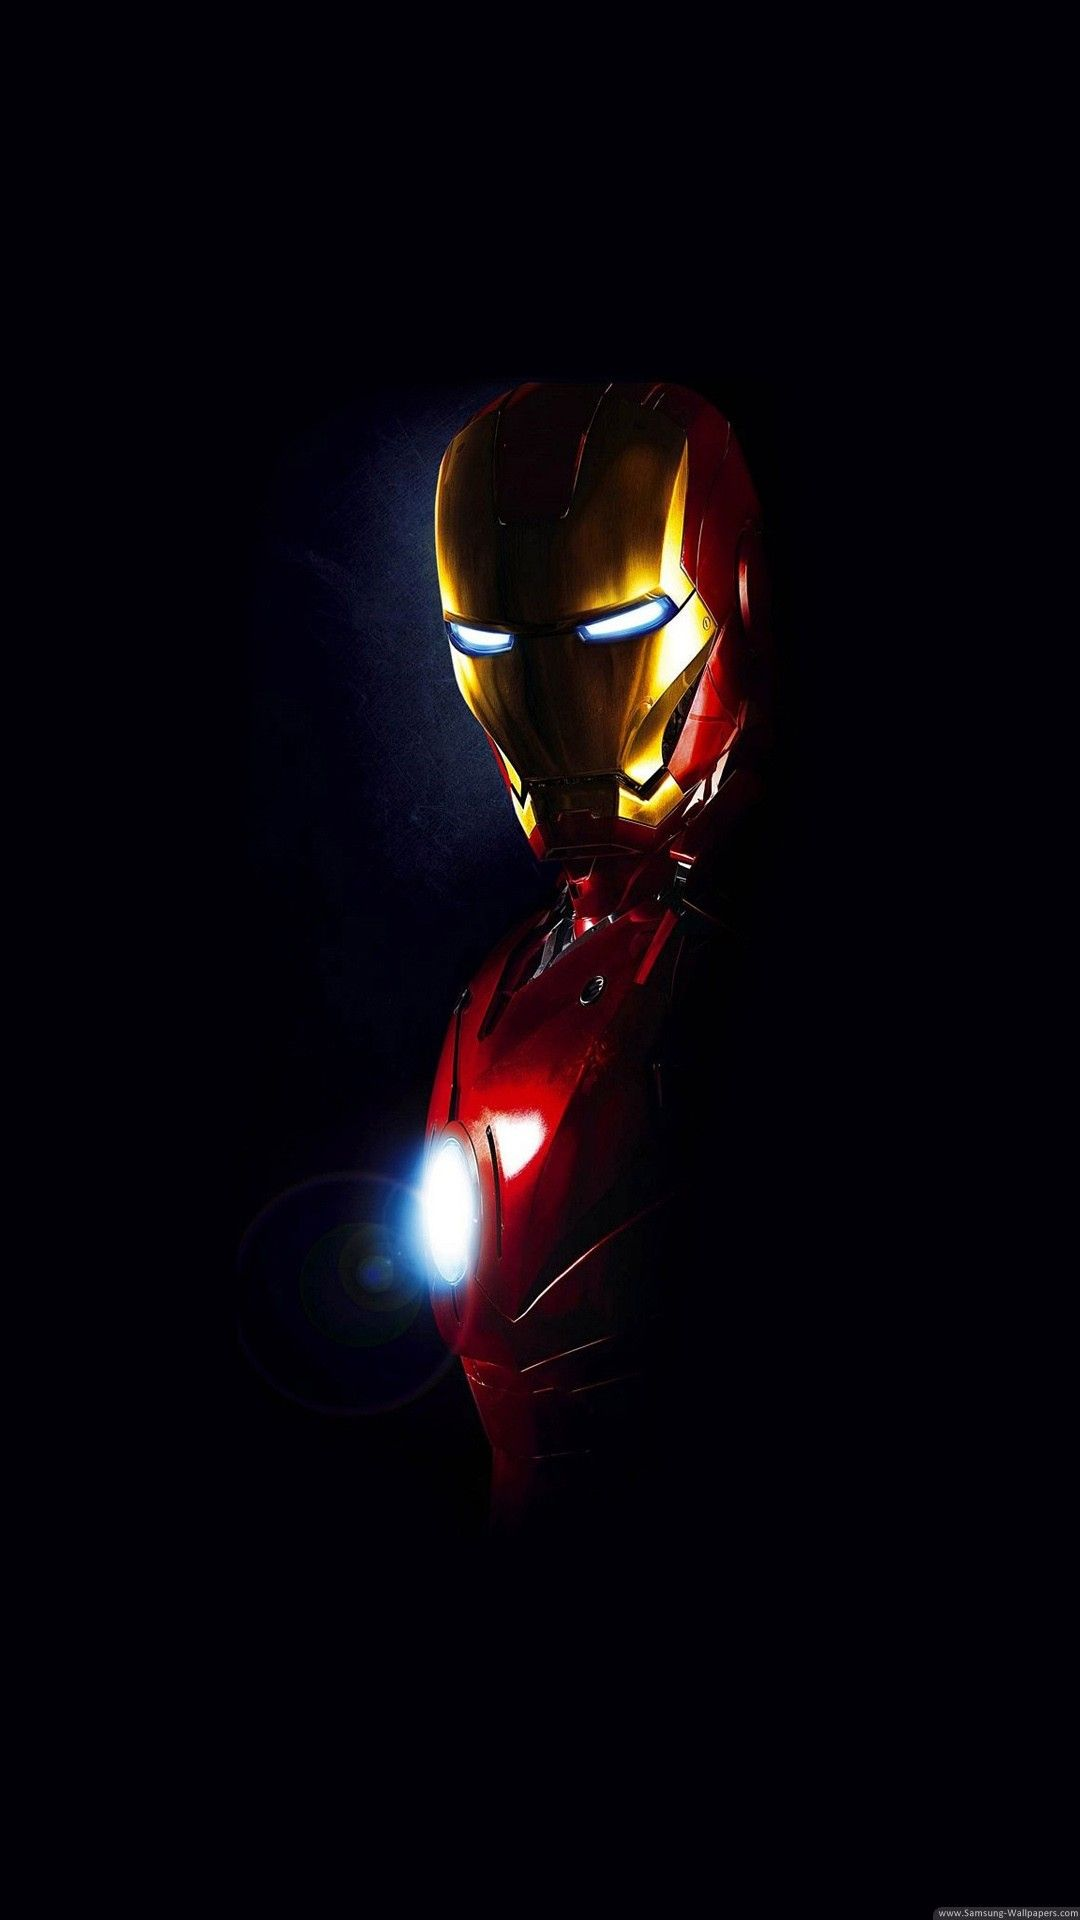 Movies Iphone 6 Plus Wallpapers Iron Man Arc Reactor Glow Iphone 6 Plus Hd Wallpaper Iron Man Wallpaper Avengers Wallpaper Iphone 6 Plus Wallpaper